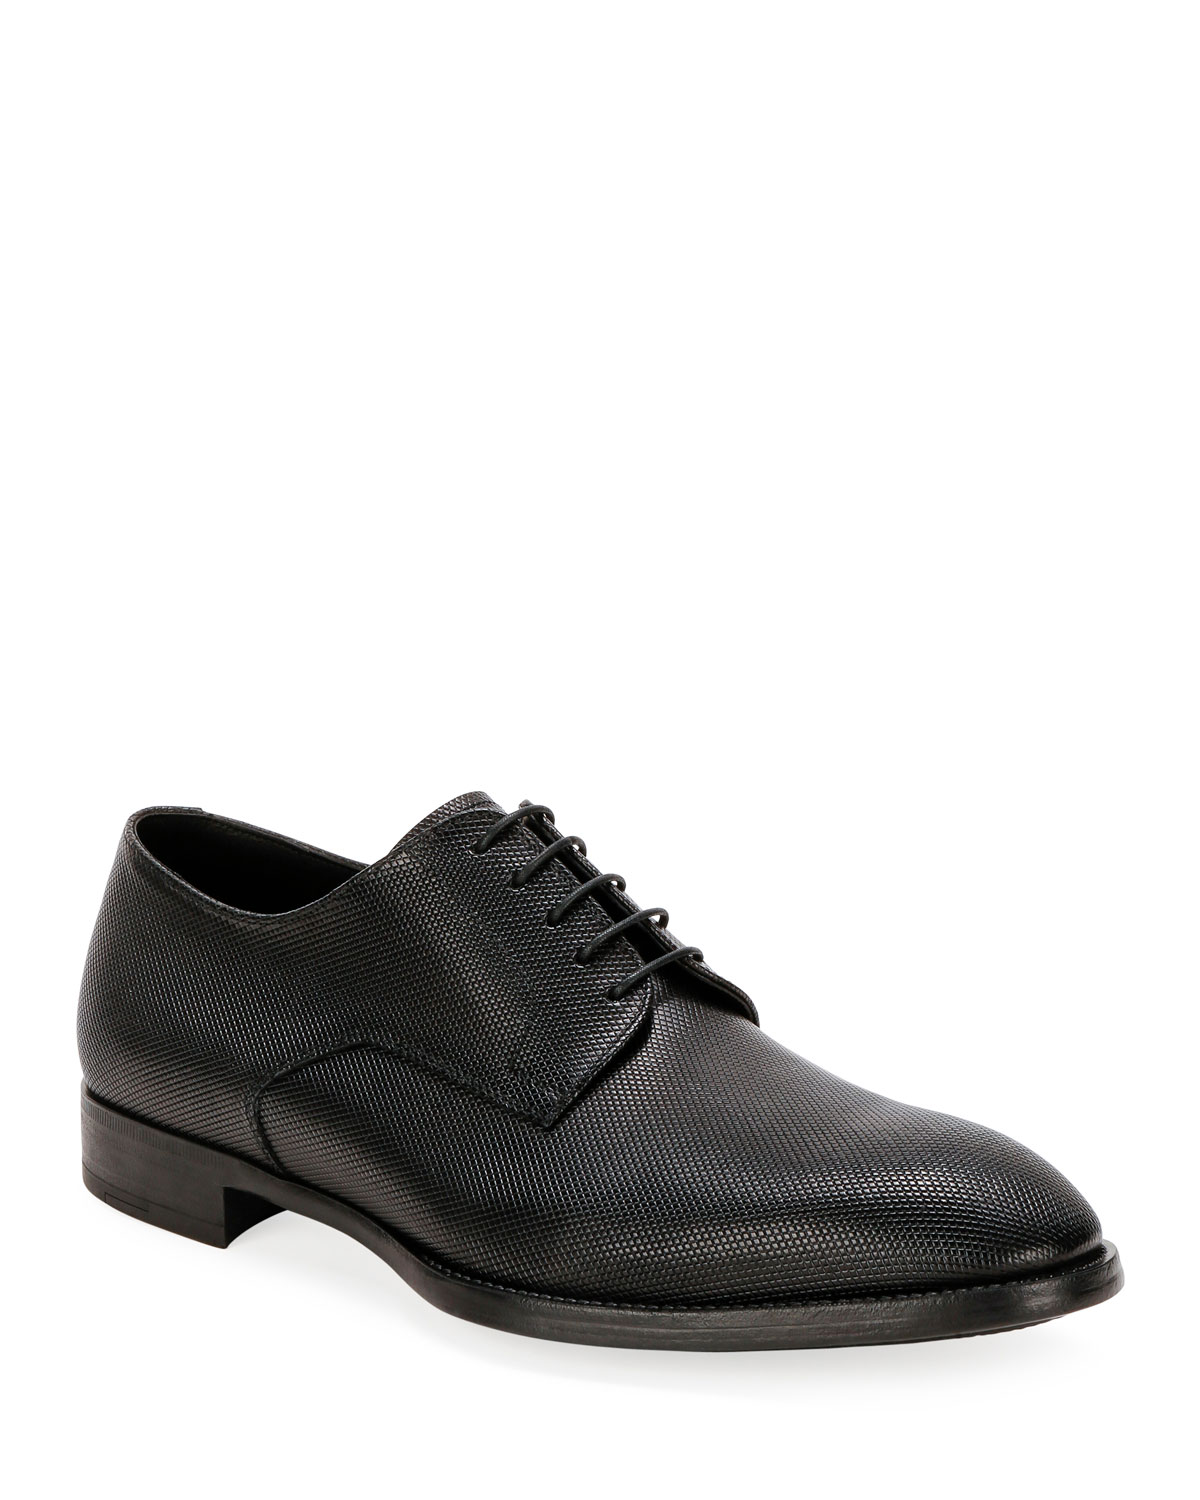 Giorgio Armani Shoes MEN'S TEXTURED LEATHER DERBY SHOES